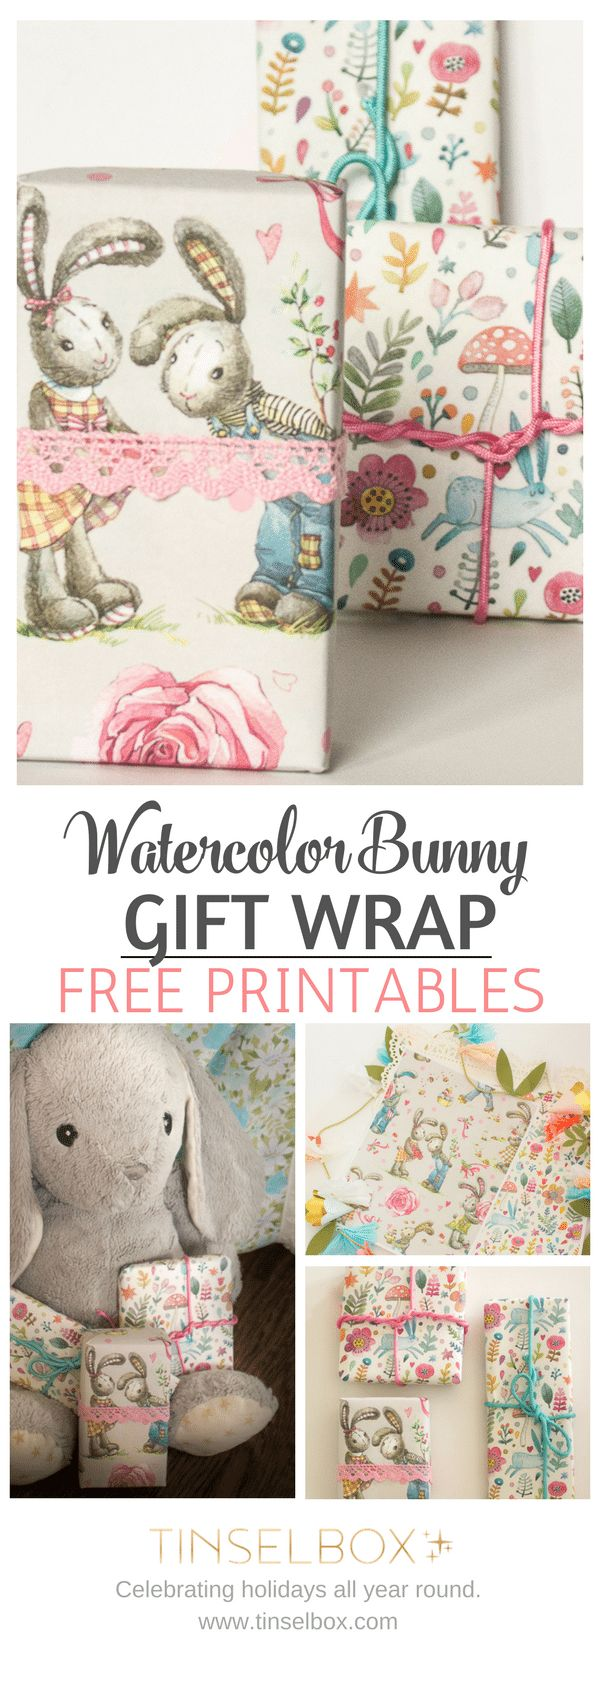 145 best easter images on pinterest easter recipes easter food sweet watercolor bunny gift wrap free printable negle Images